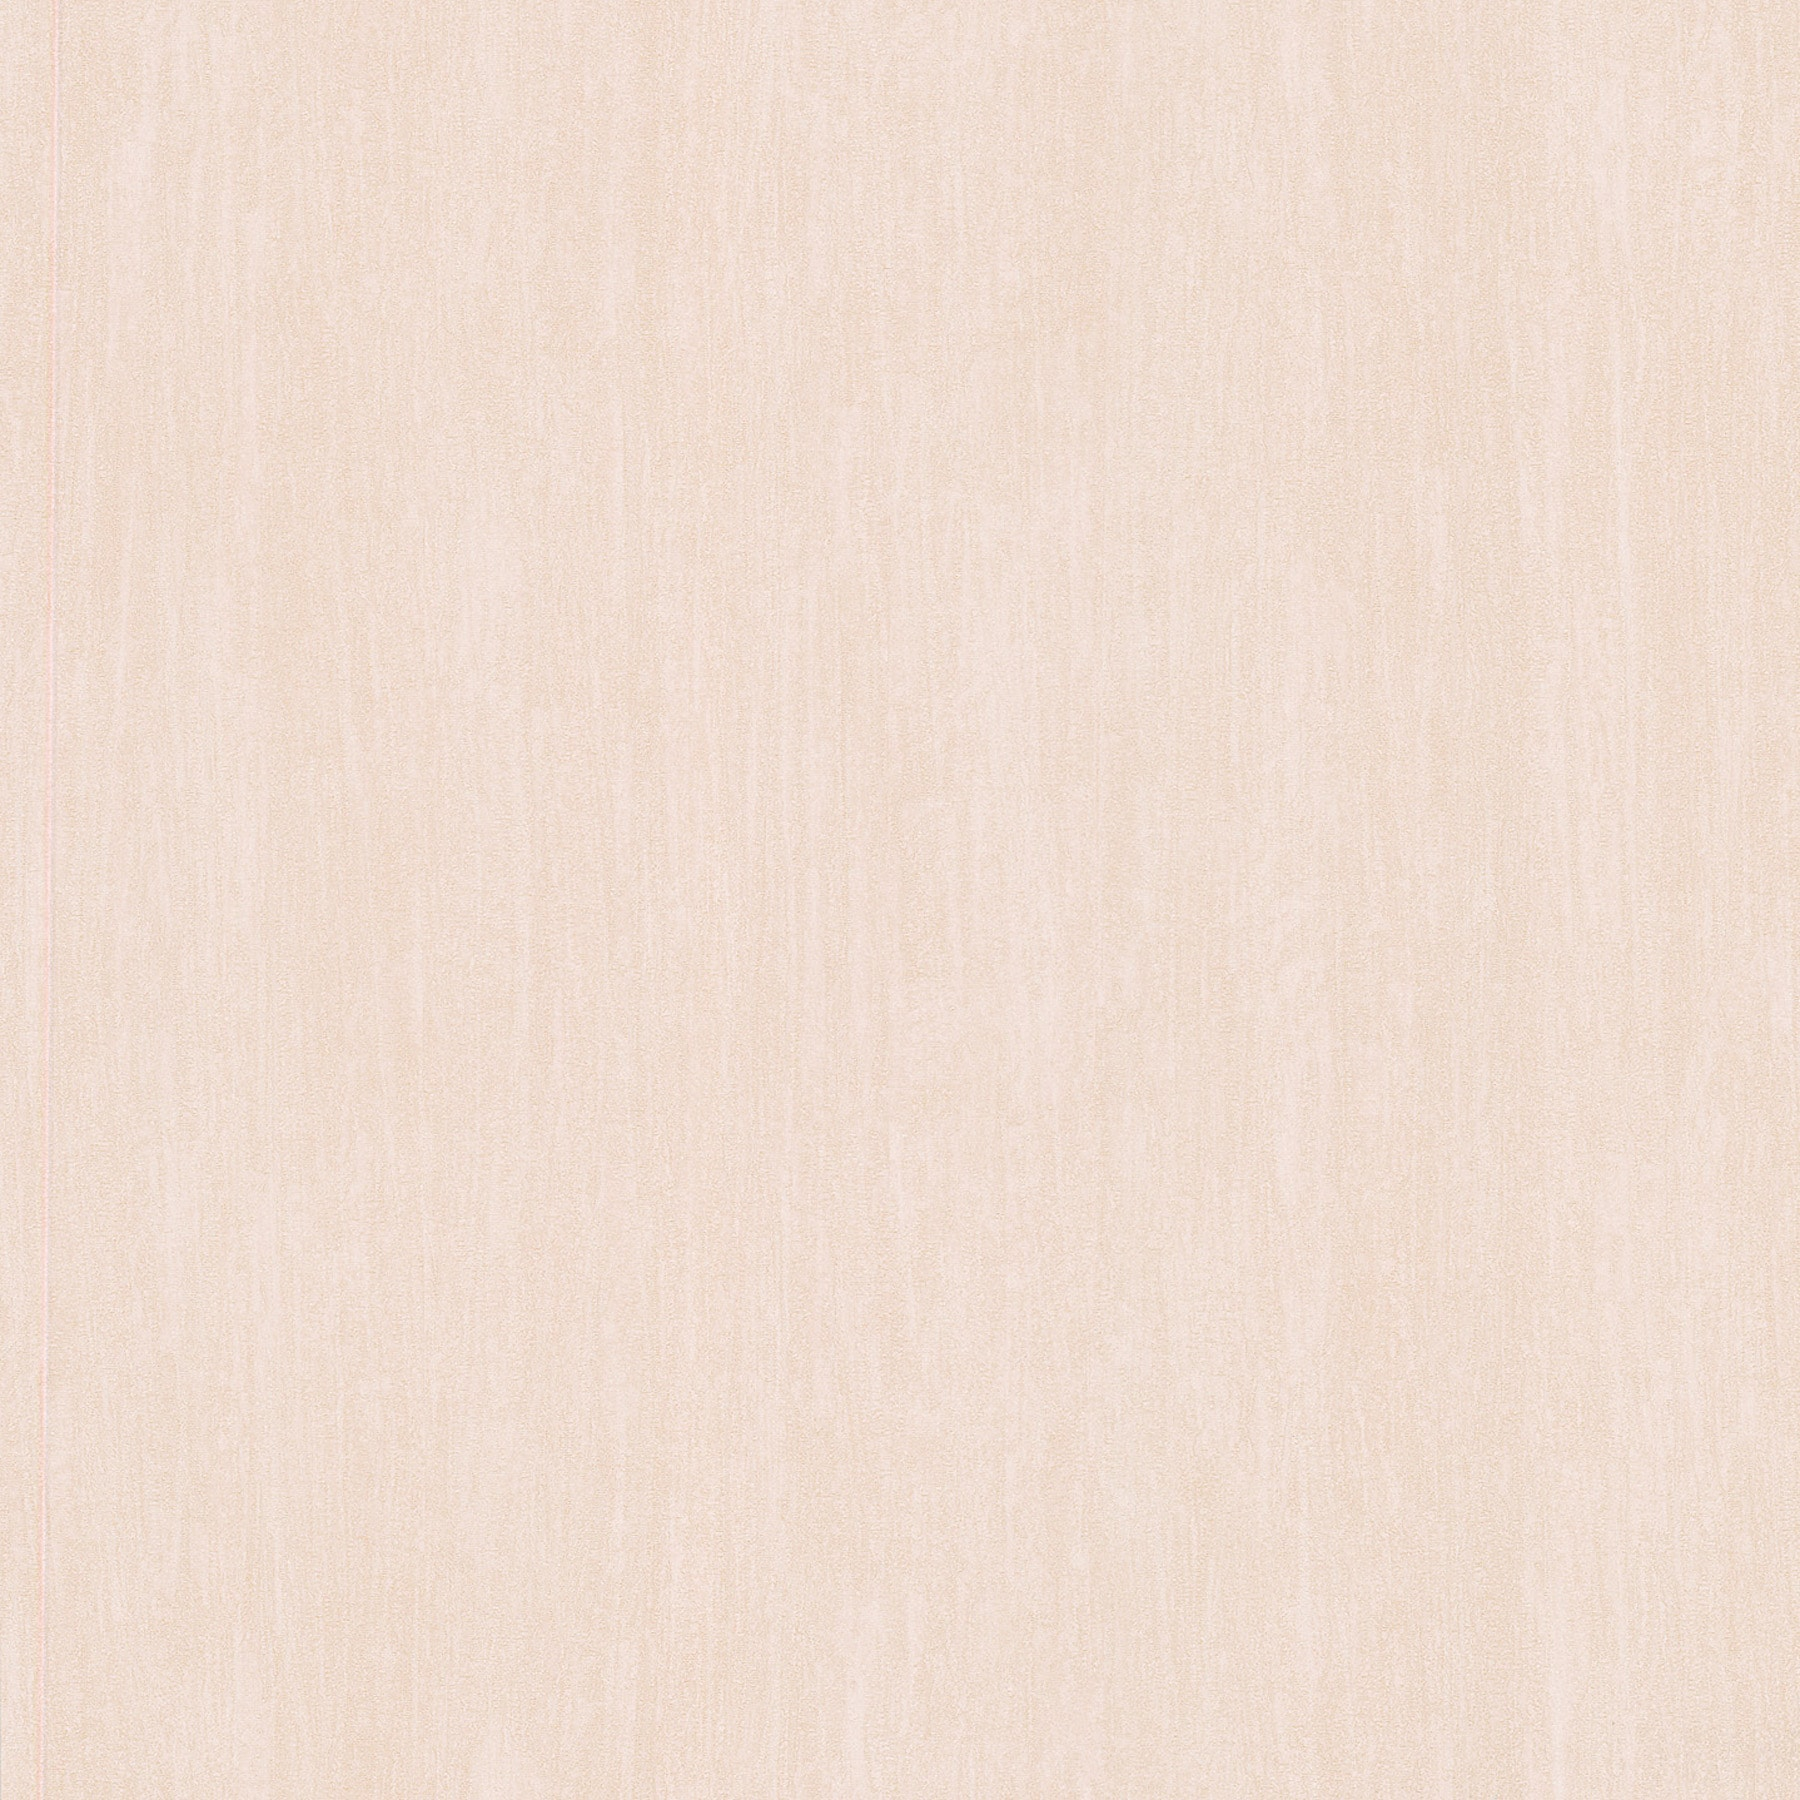 Brewster Beige Scrubbable Texture Wallpaper Beigedimensions 27